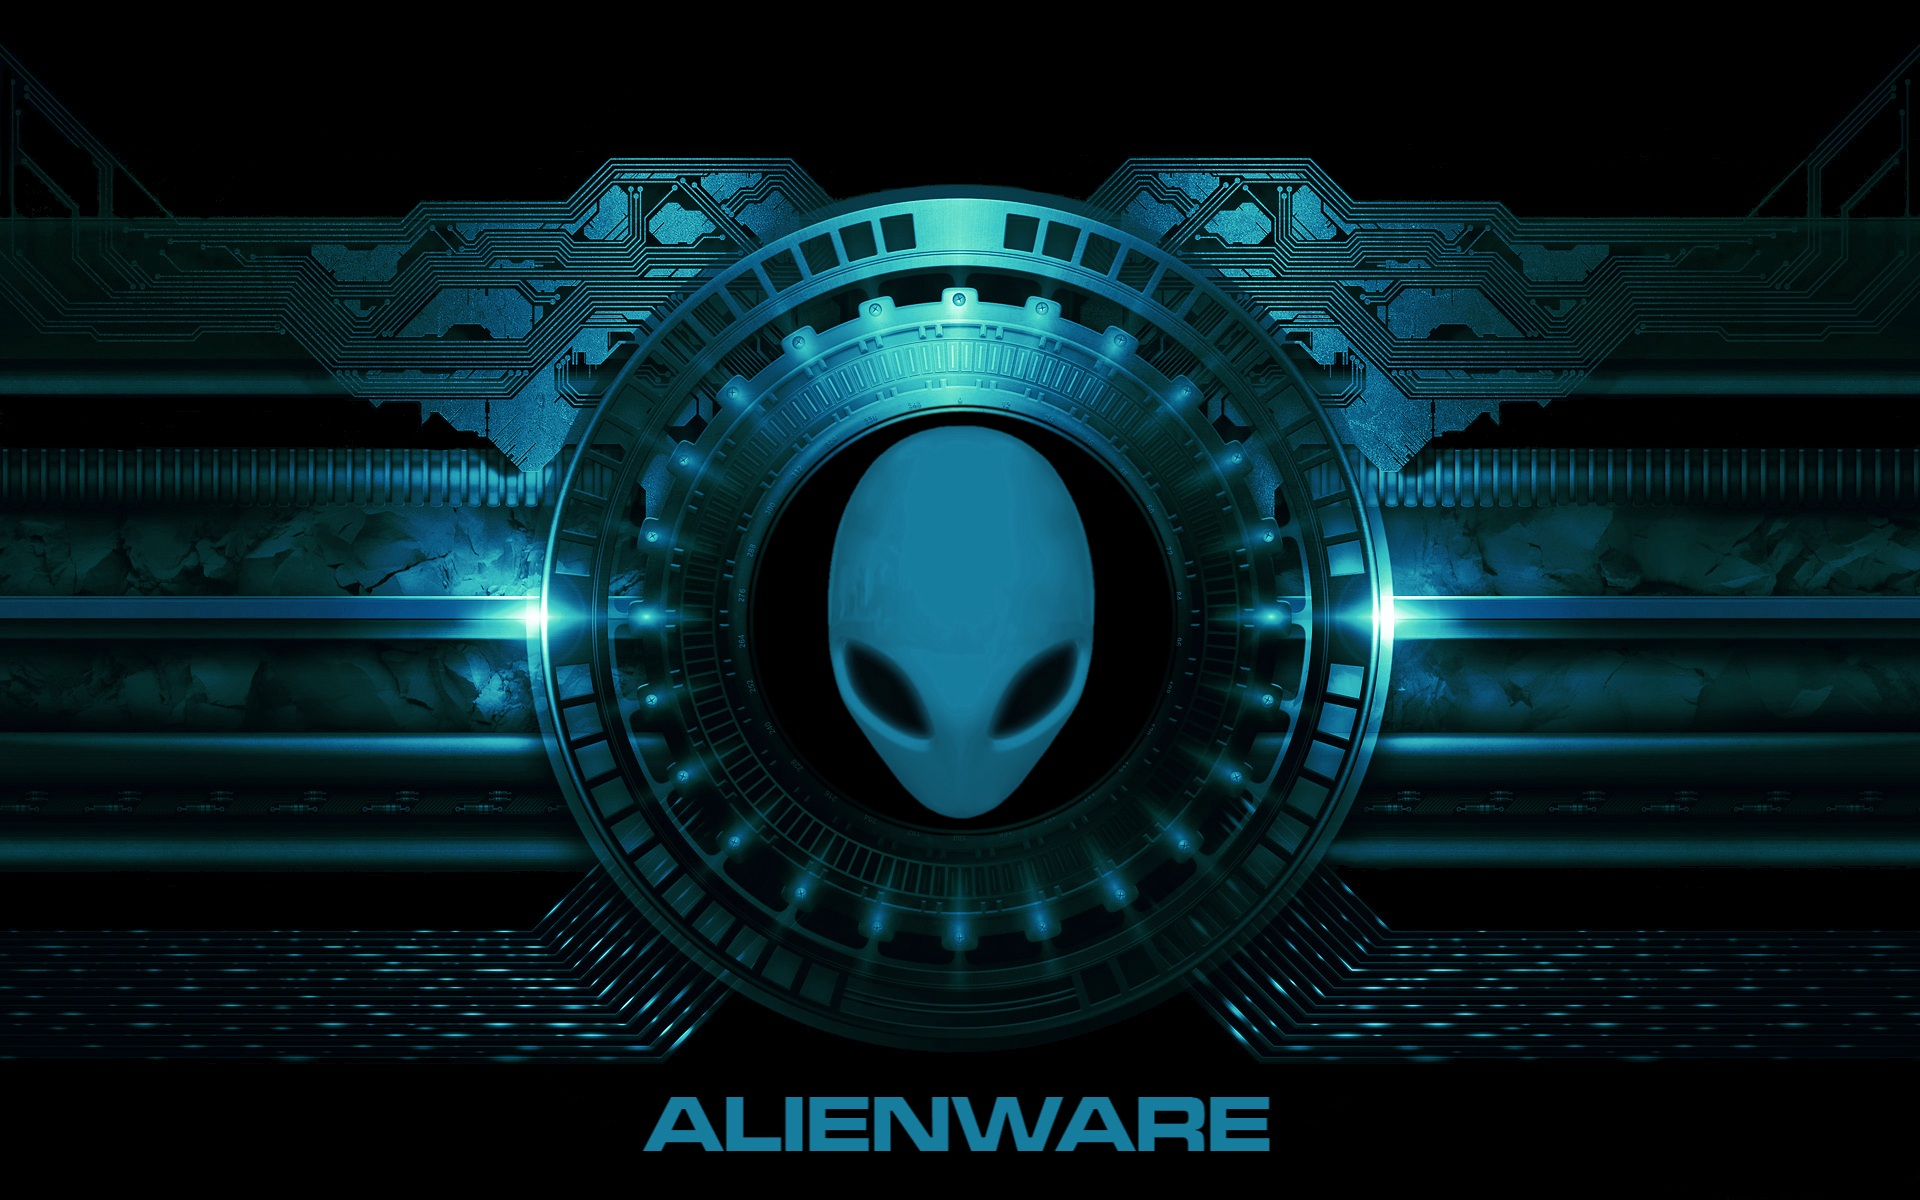 alienware desktop background blue mechanical circuit 1920x1200